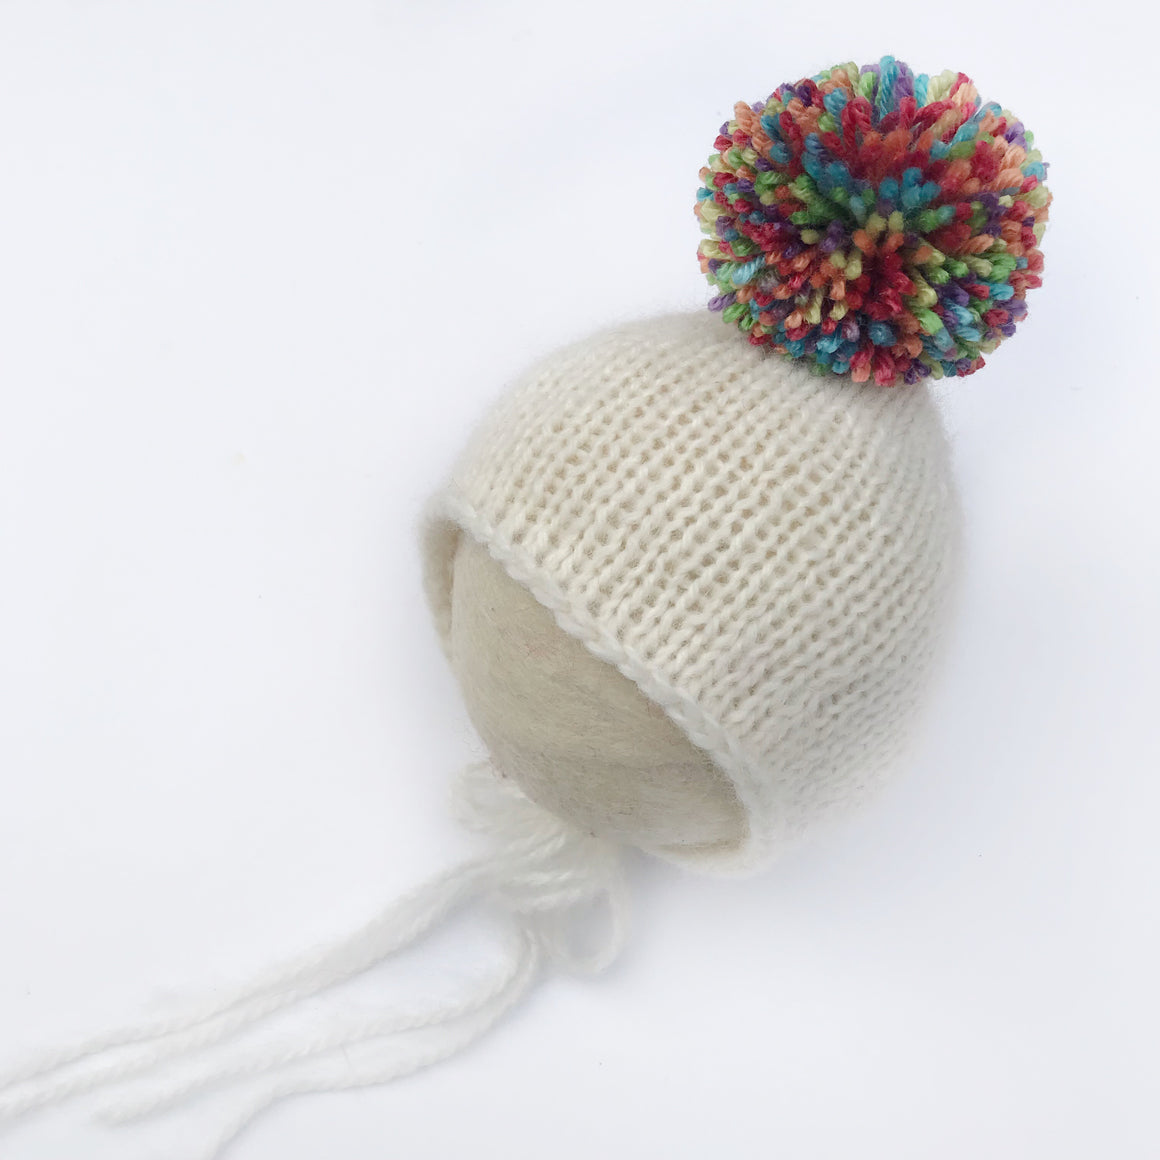 Rainbow Pom Pom Pixie Bonnet - Knit Photography Props by Double the Stitches